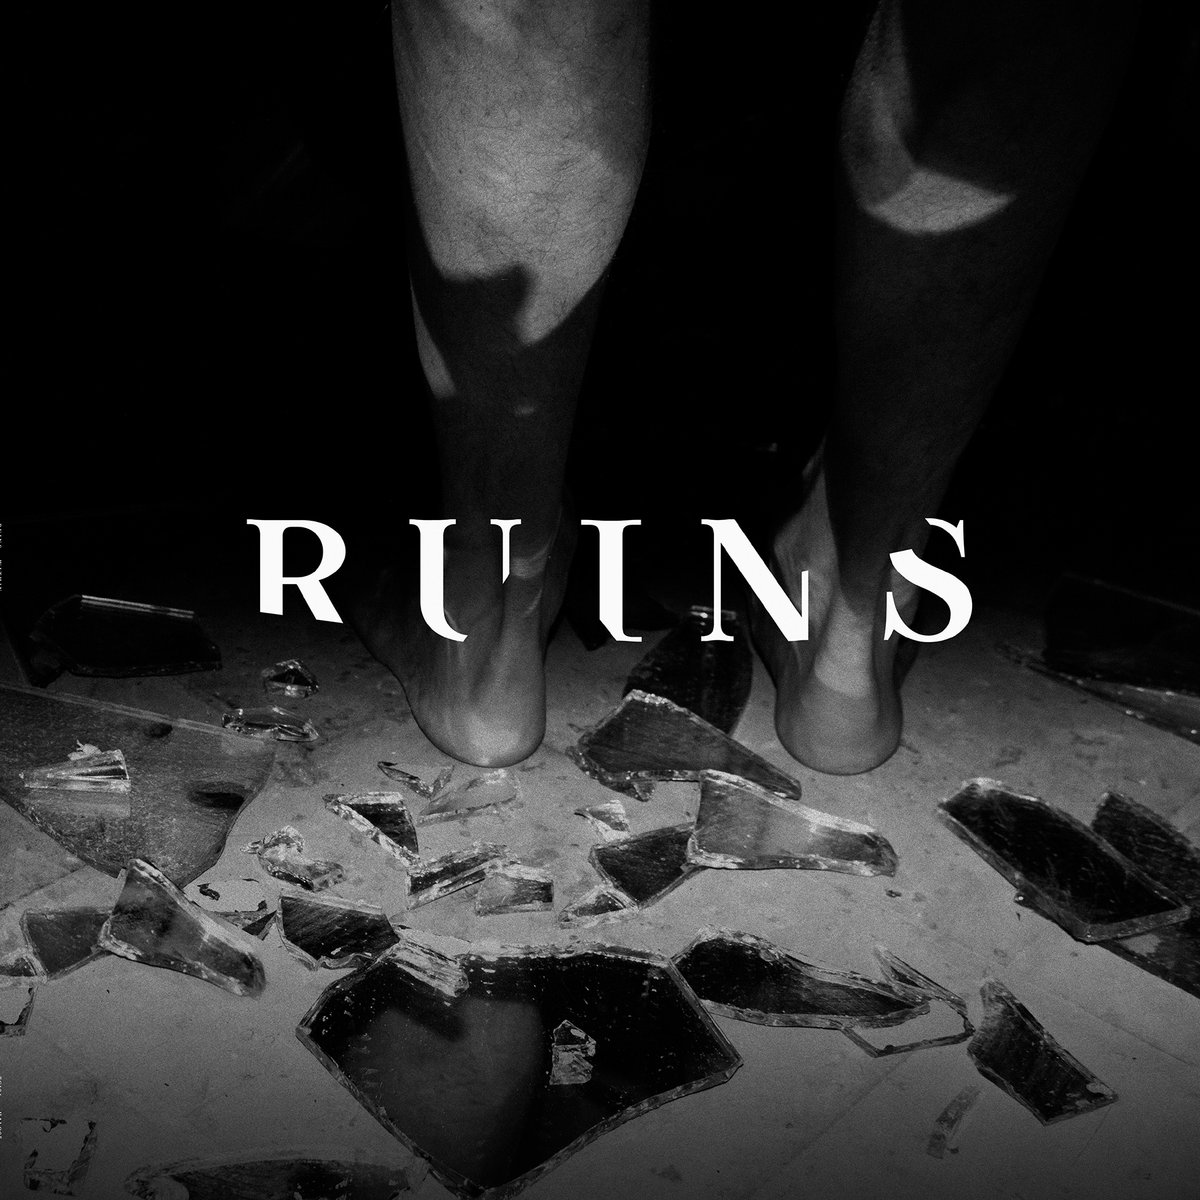 Ruins - Inversion @ 'Within' album (bielefeld, metal)